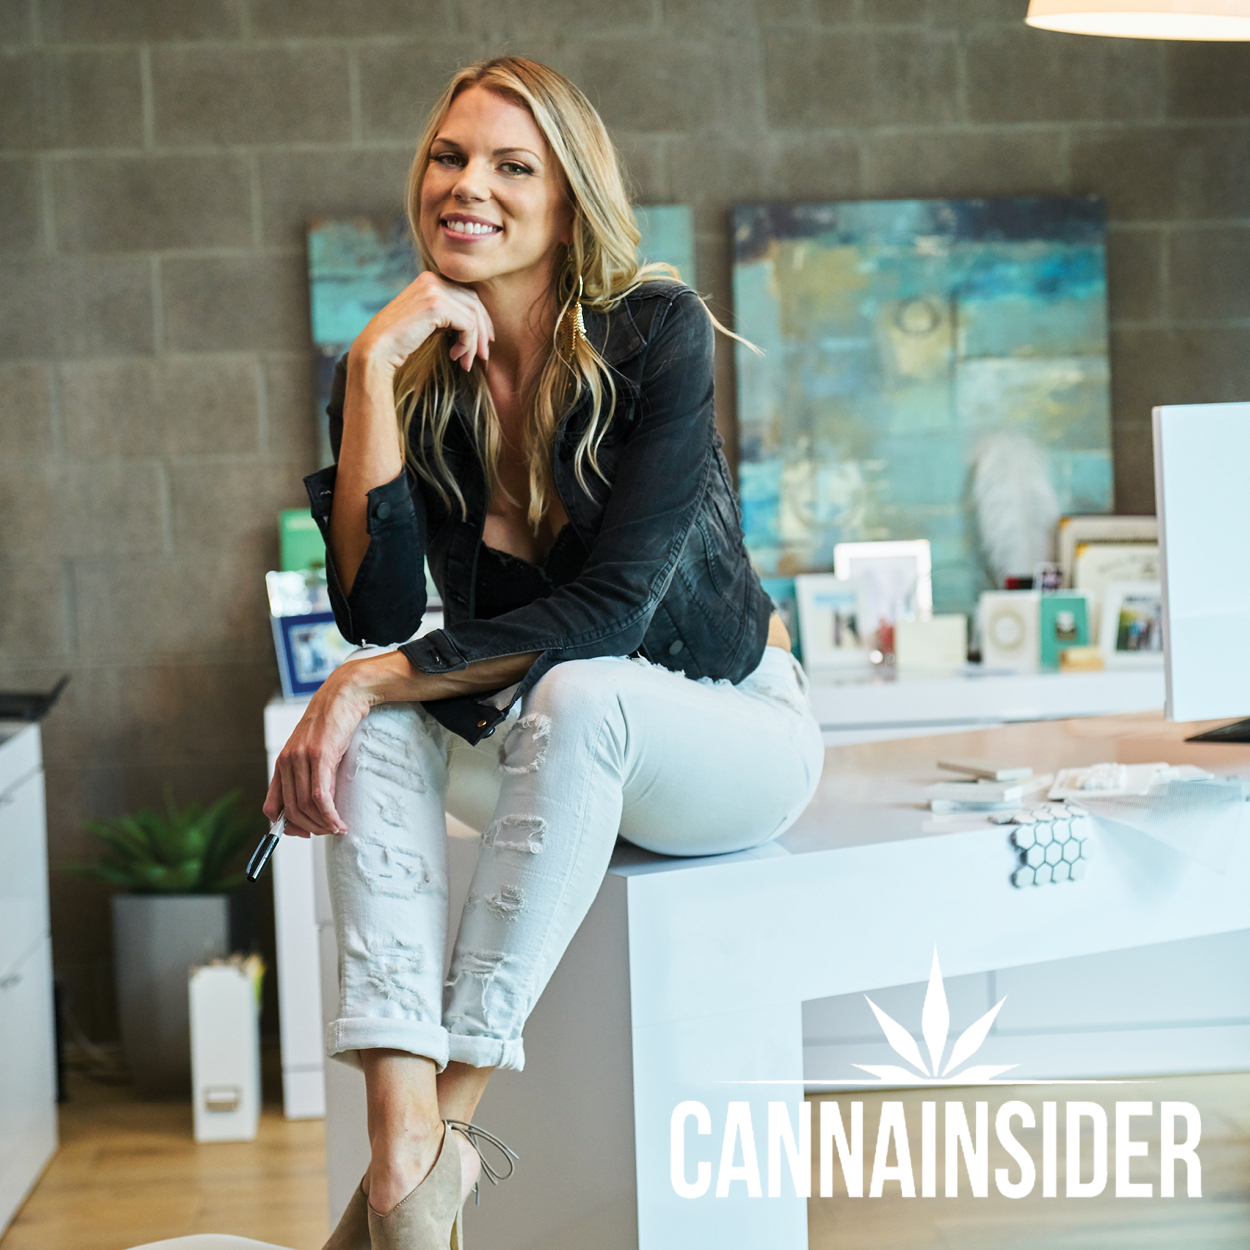 Canna Insider - Insider Reveals How To Design a Cannabis Dispensary That Customers Flock To